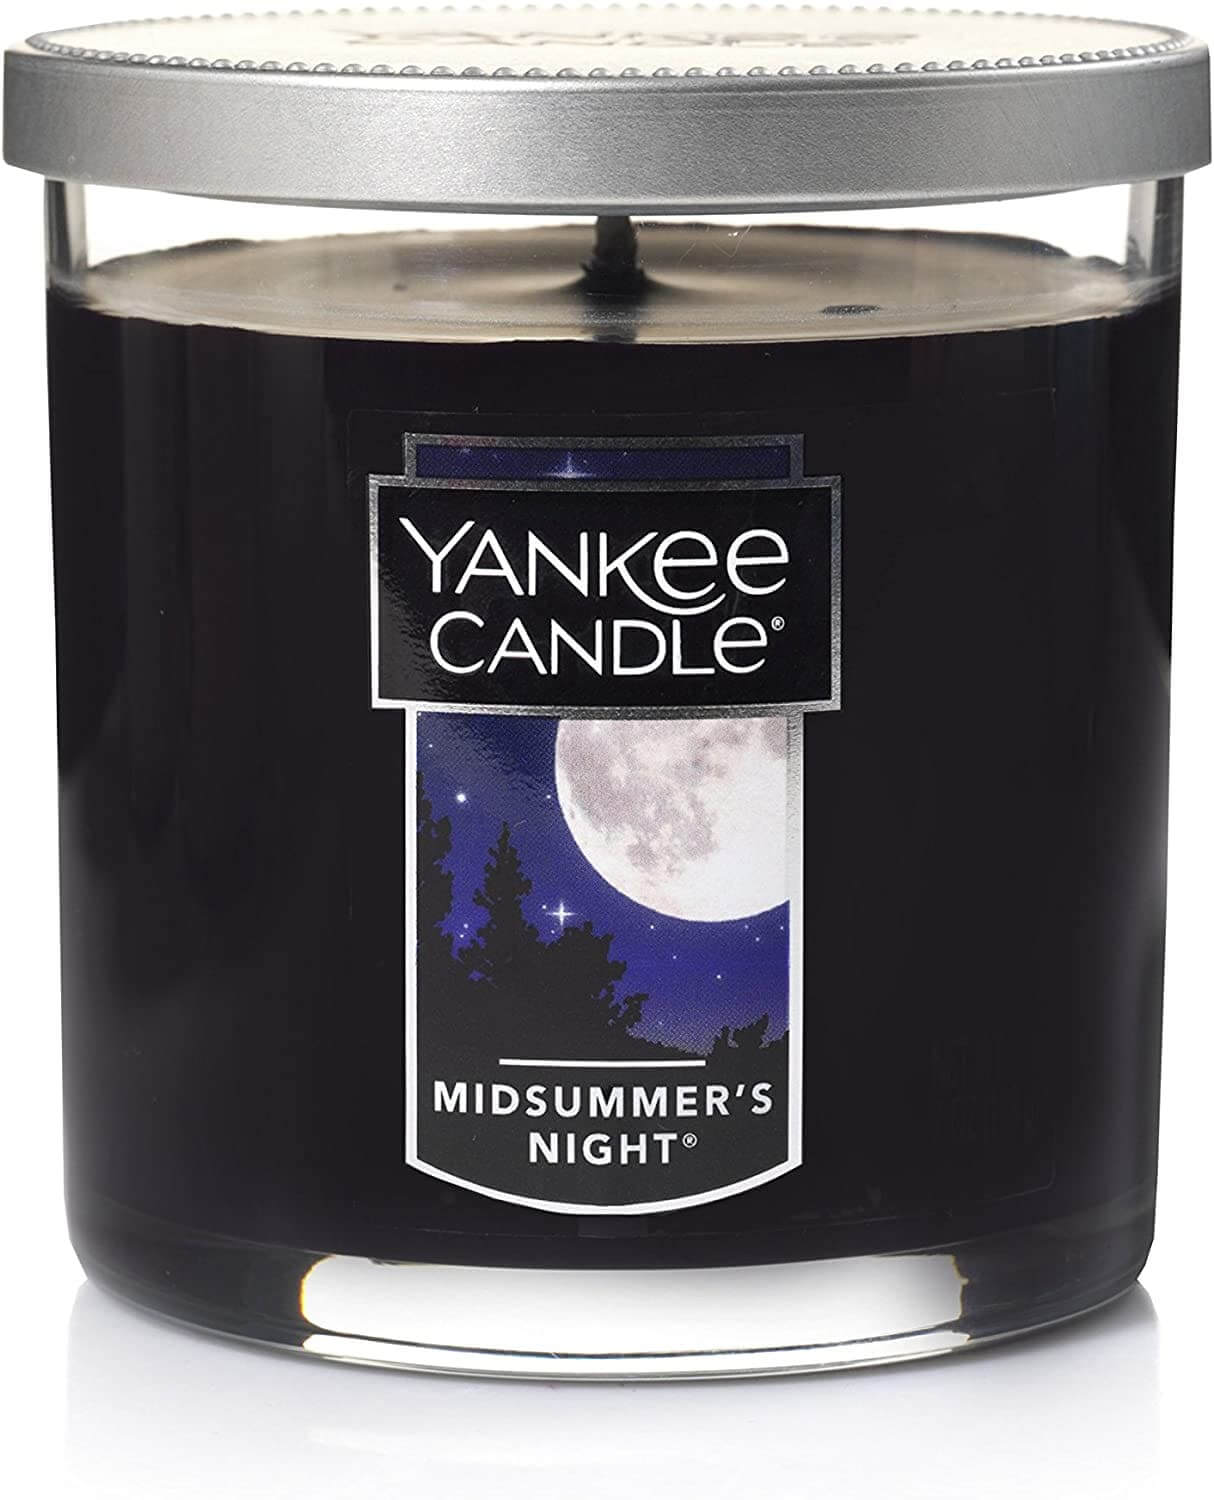 A small black candle